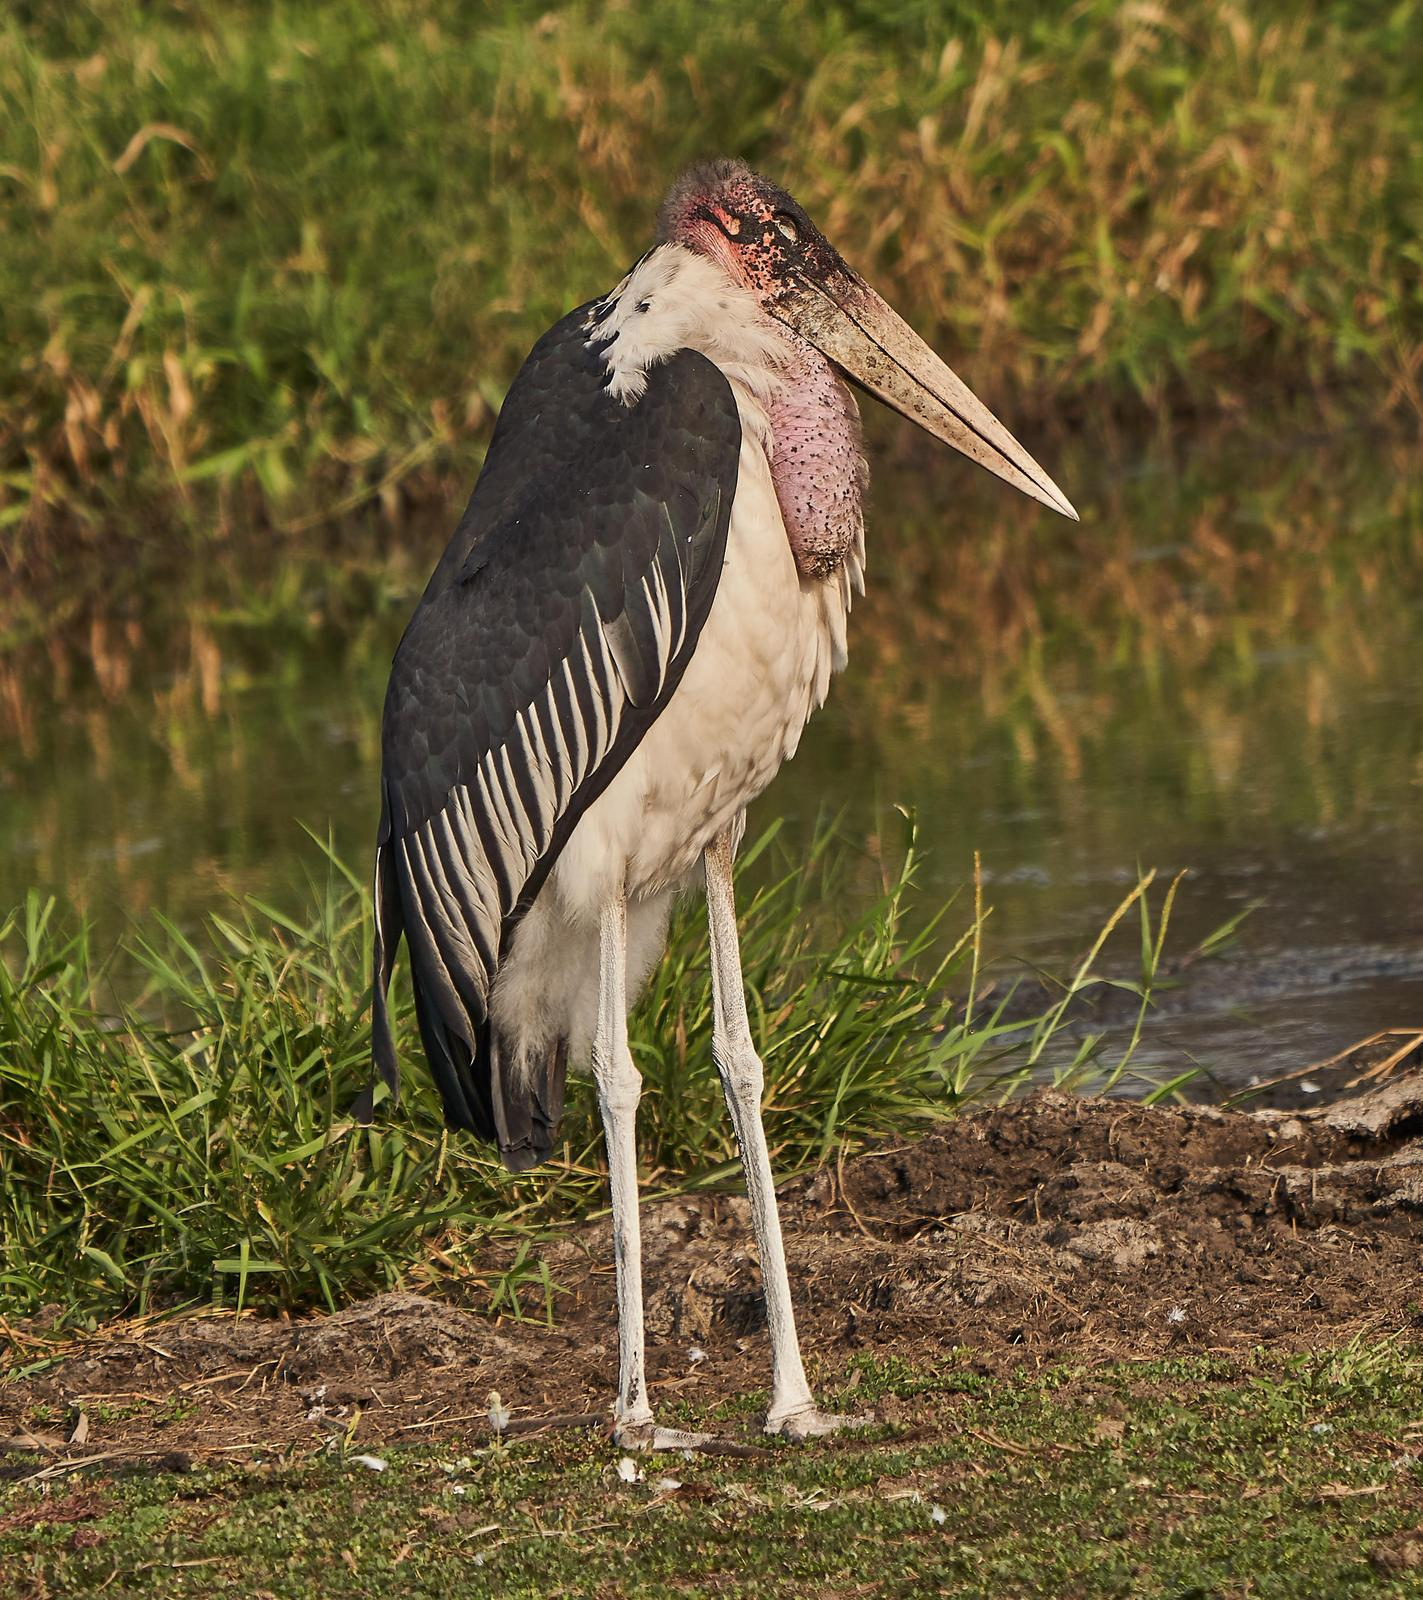 Marabou Stork Photo by Steven Cheong